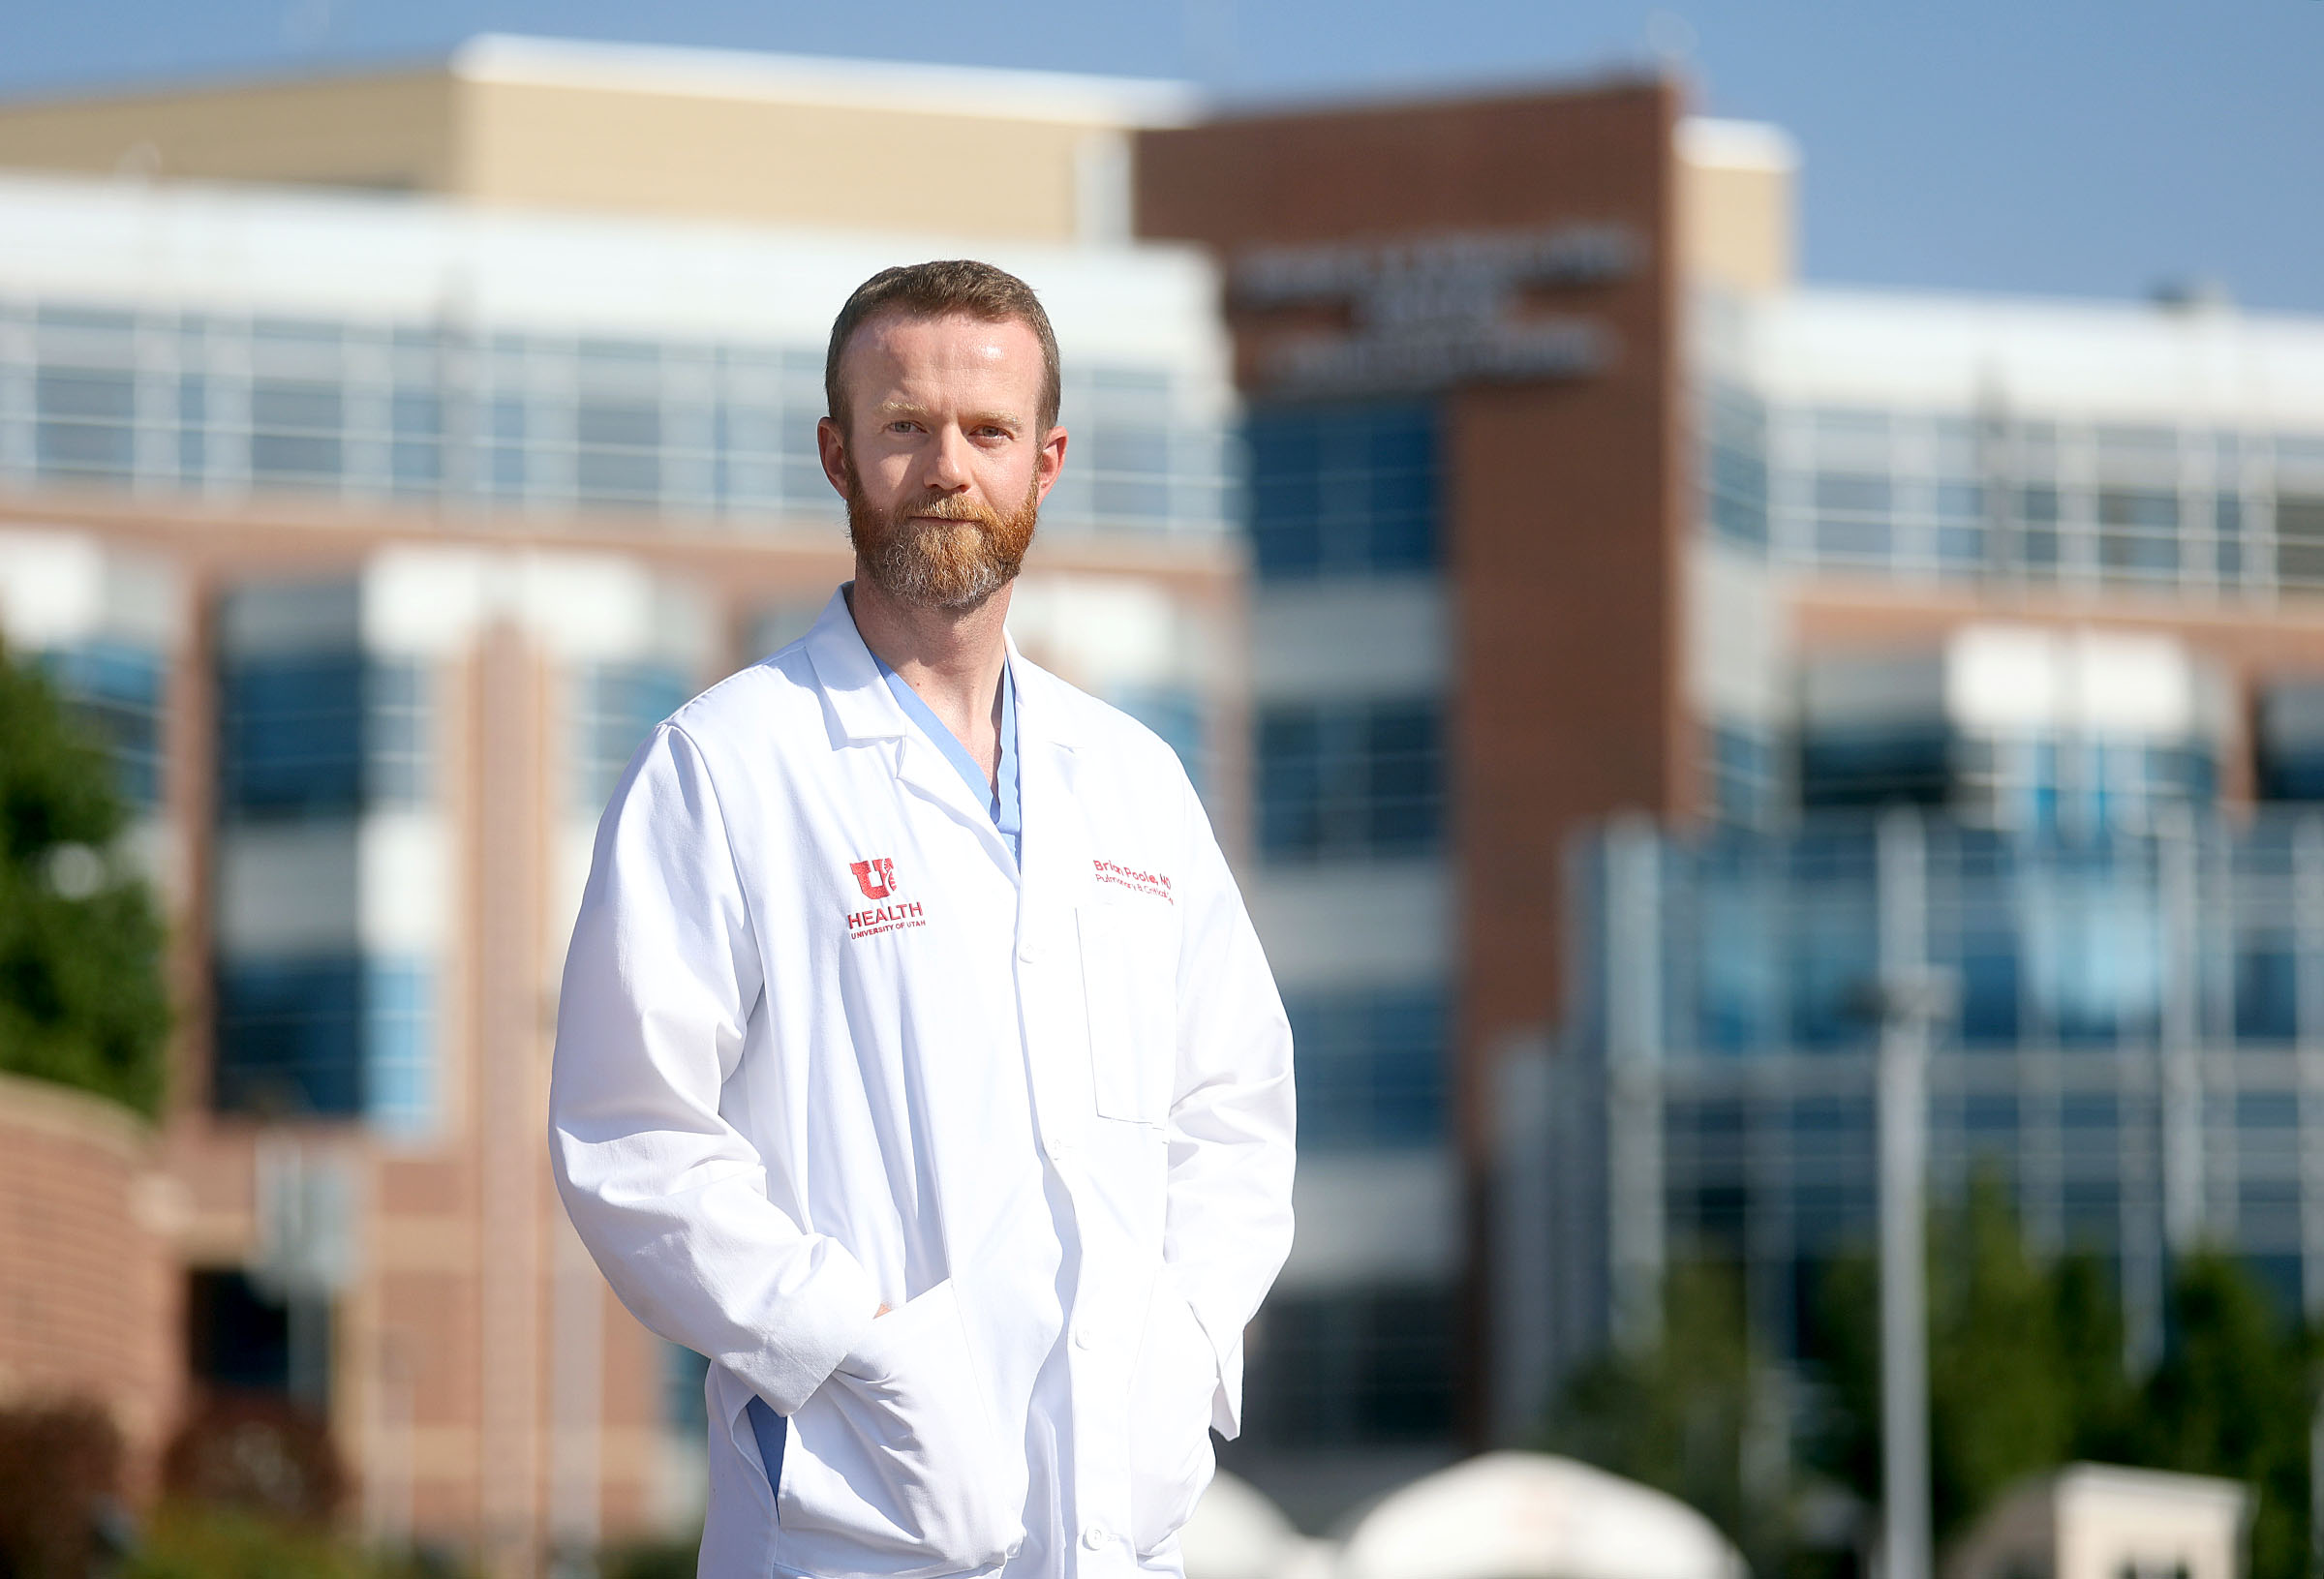 Dr. Brian Poole, a pulmonary and critical care medicine fellow, poses for a portrait near the University of Utah Hospital in Salt Lake City on Tuesday, Sept. 14, 2021.